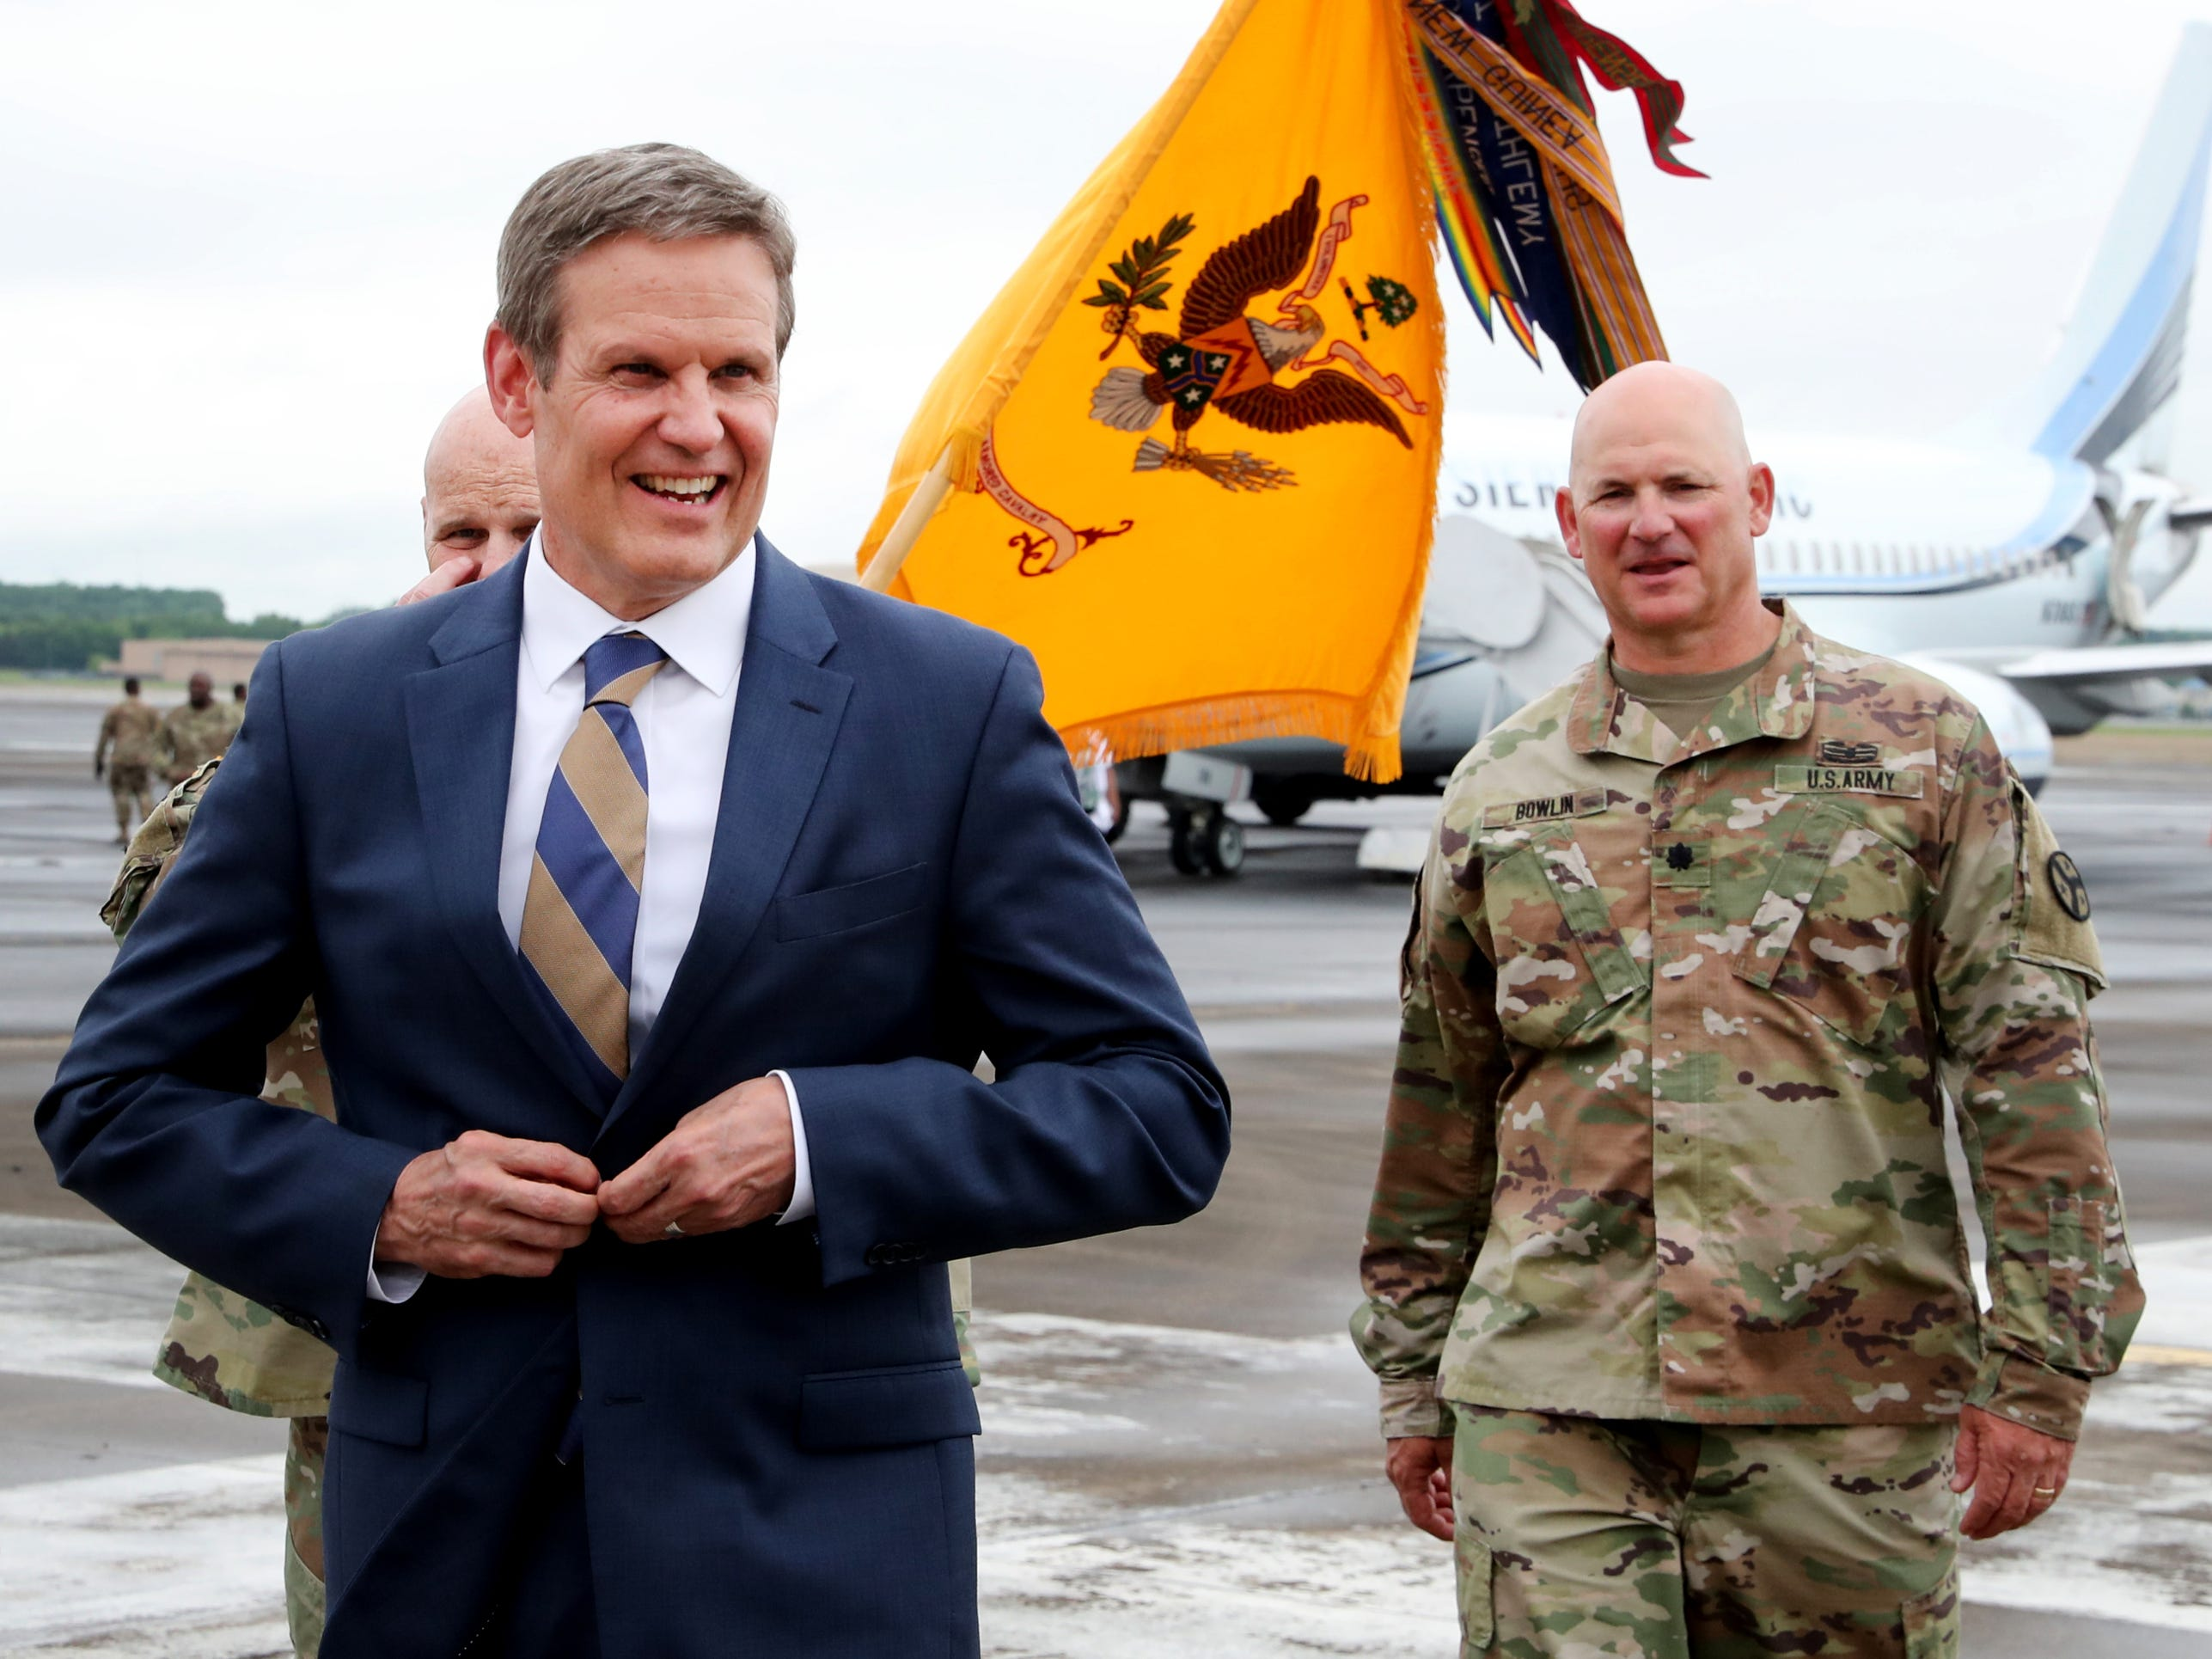 Tennessee Governor Bill Lee welcomed the returning troops with the 278th ACR home from a 9 month overseas deployment  to the Volunteer Training Site in Smyrna on Thursday, May 9, 2019.